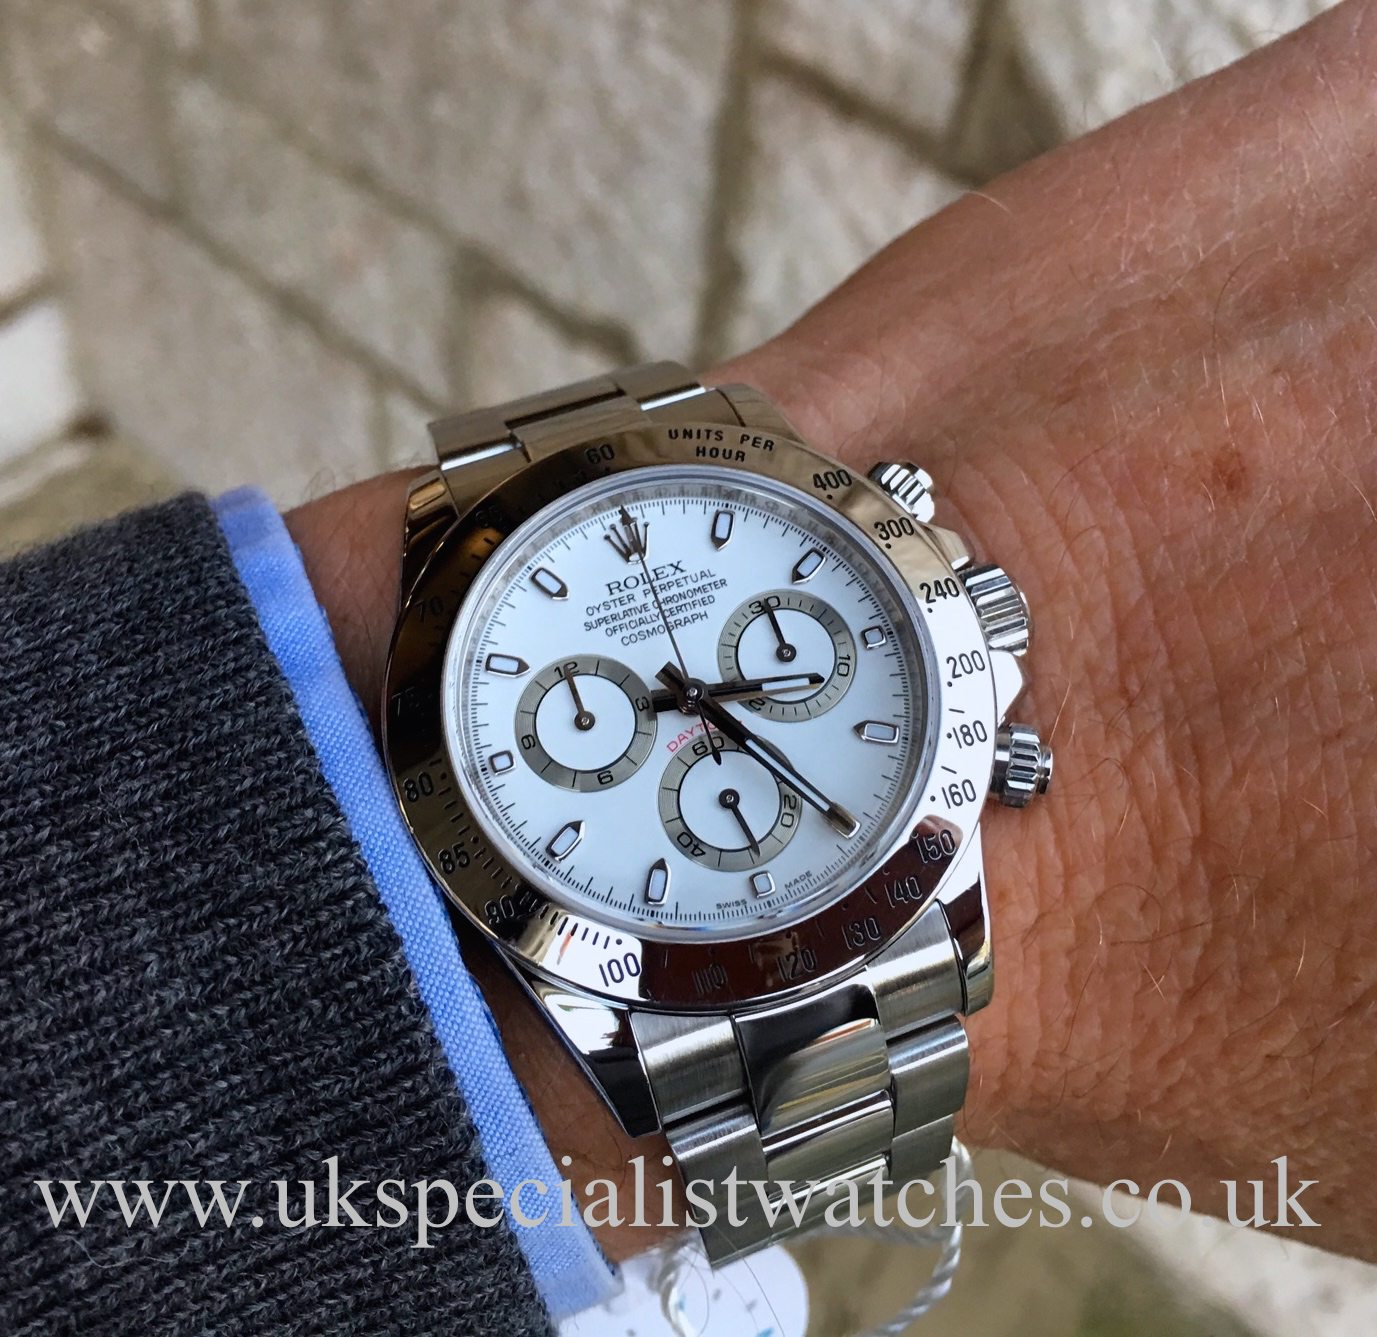 Rolex daytona cosmograph stainless steel white dial 116520 uk specialist watches for Rolex cosmograph daytona